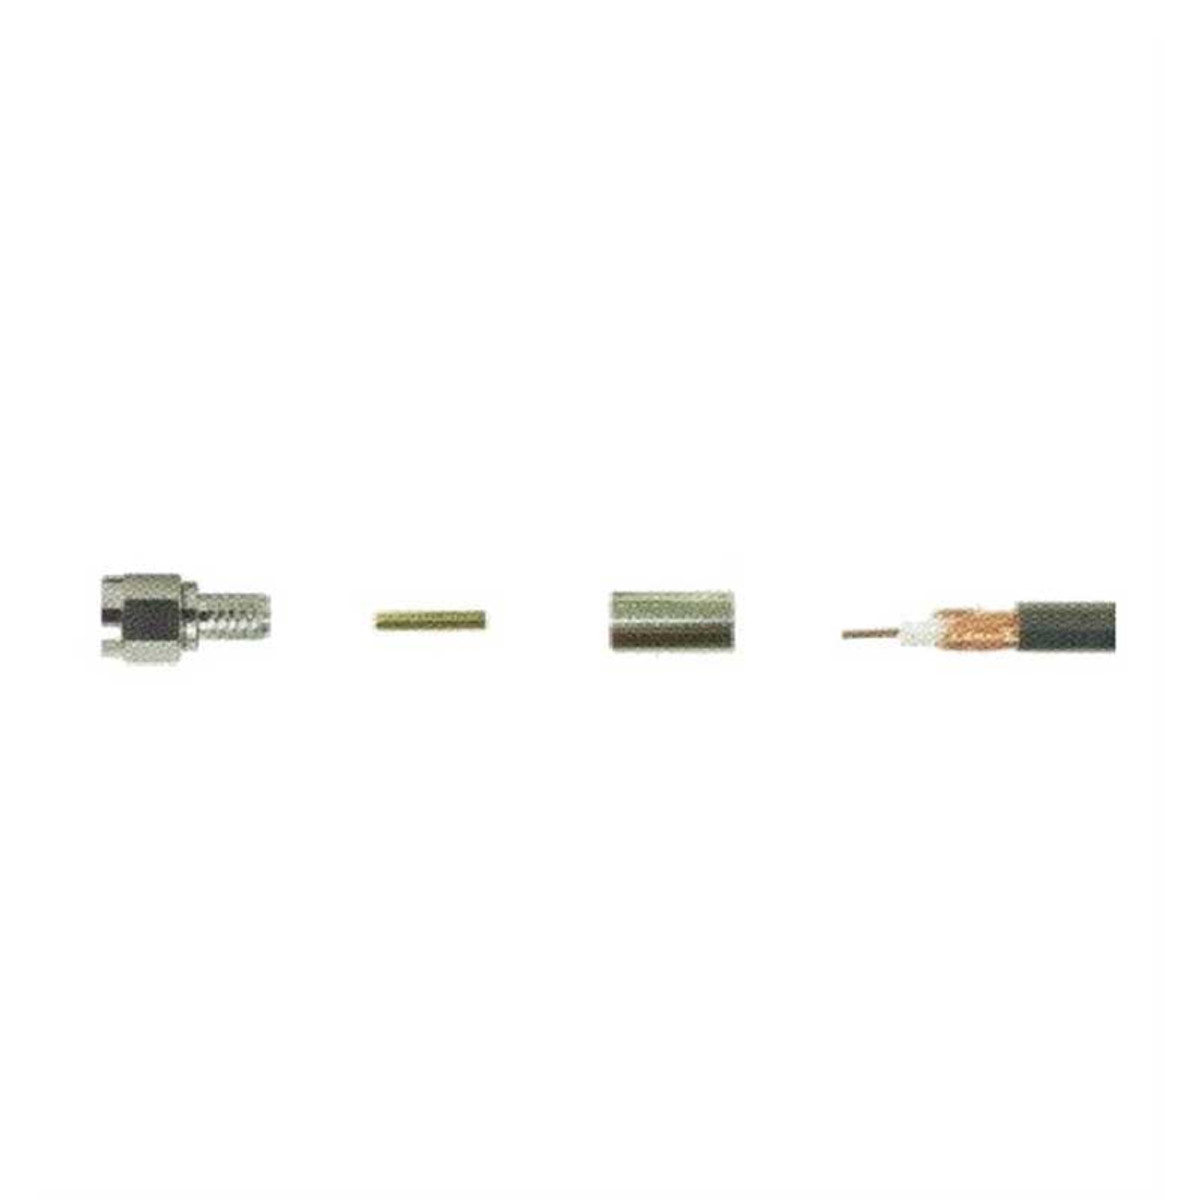 Wilson 971131 SMA Male to RG58 Crimp Connector